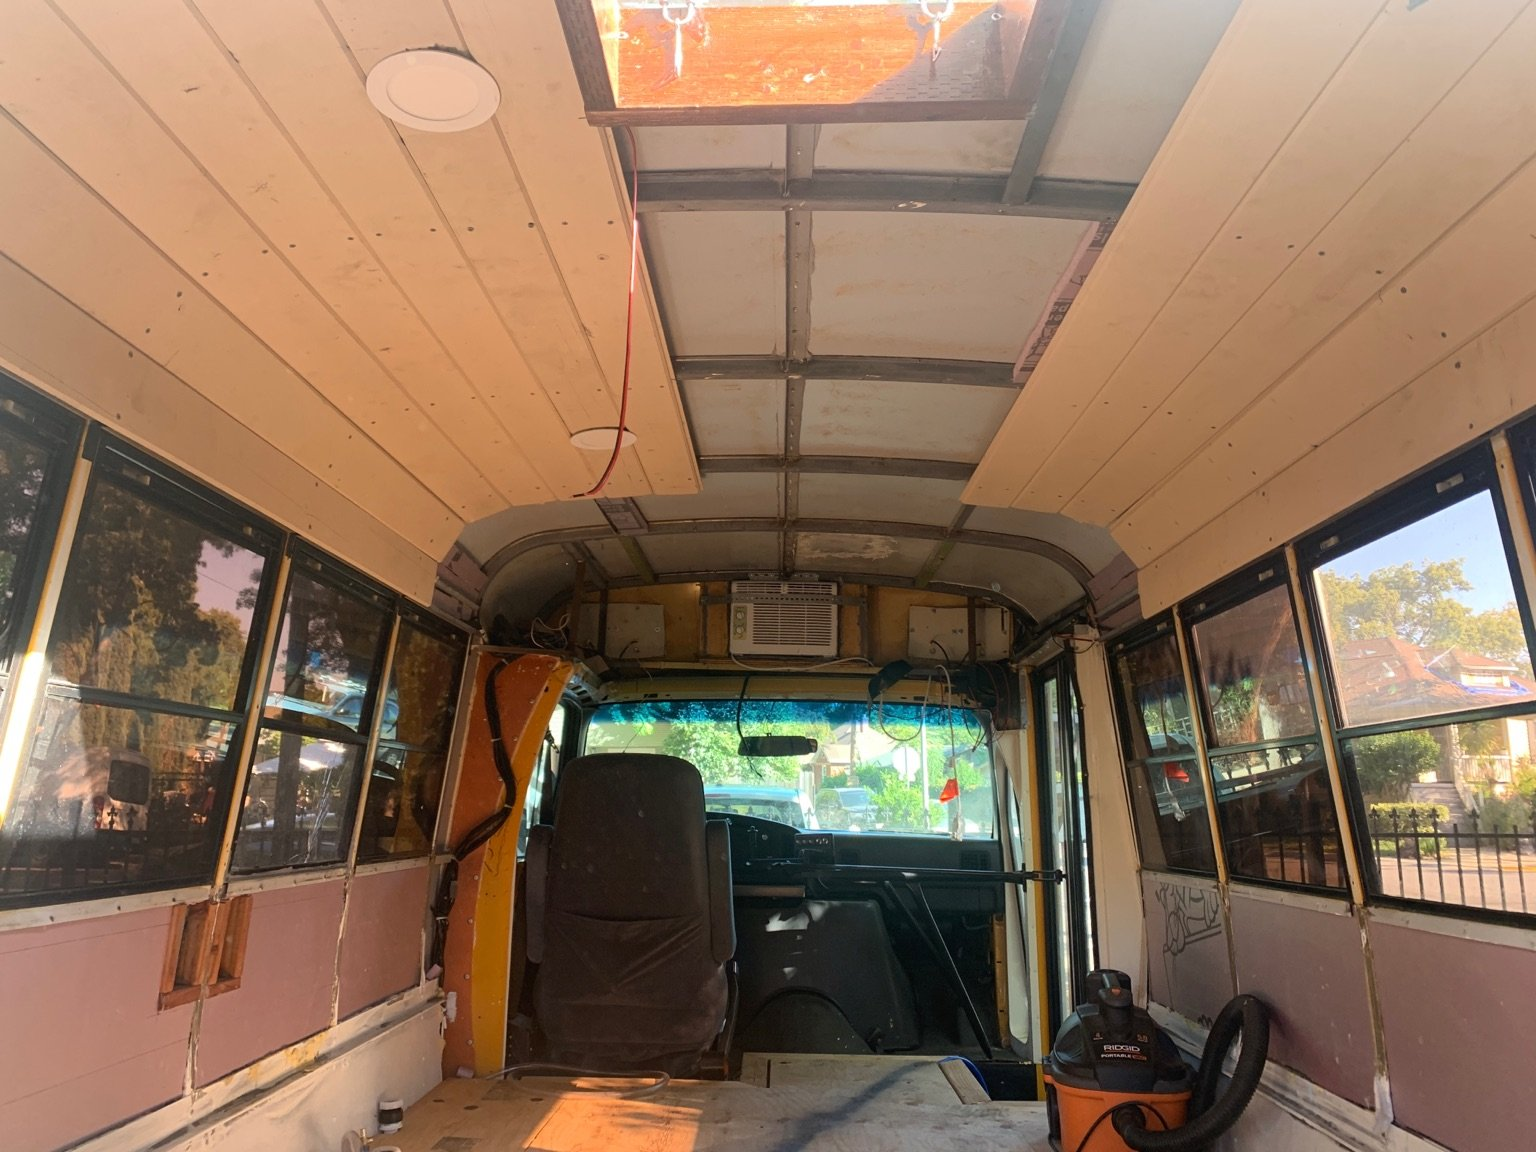 How to Install the Insulation, Walls, and Ceiling in a Skoolie